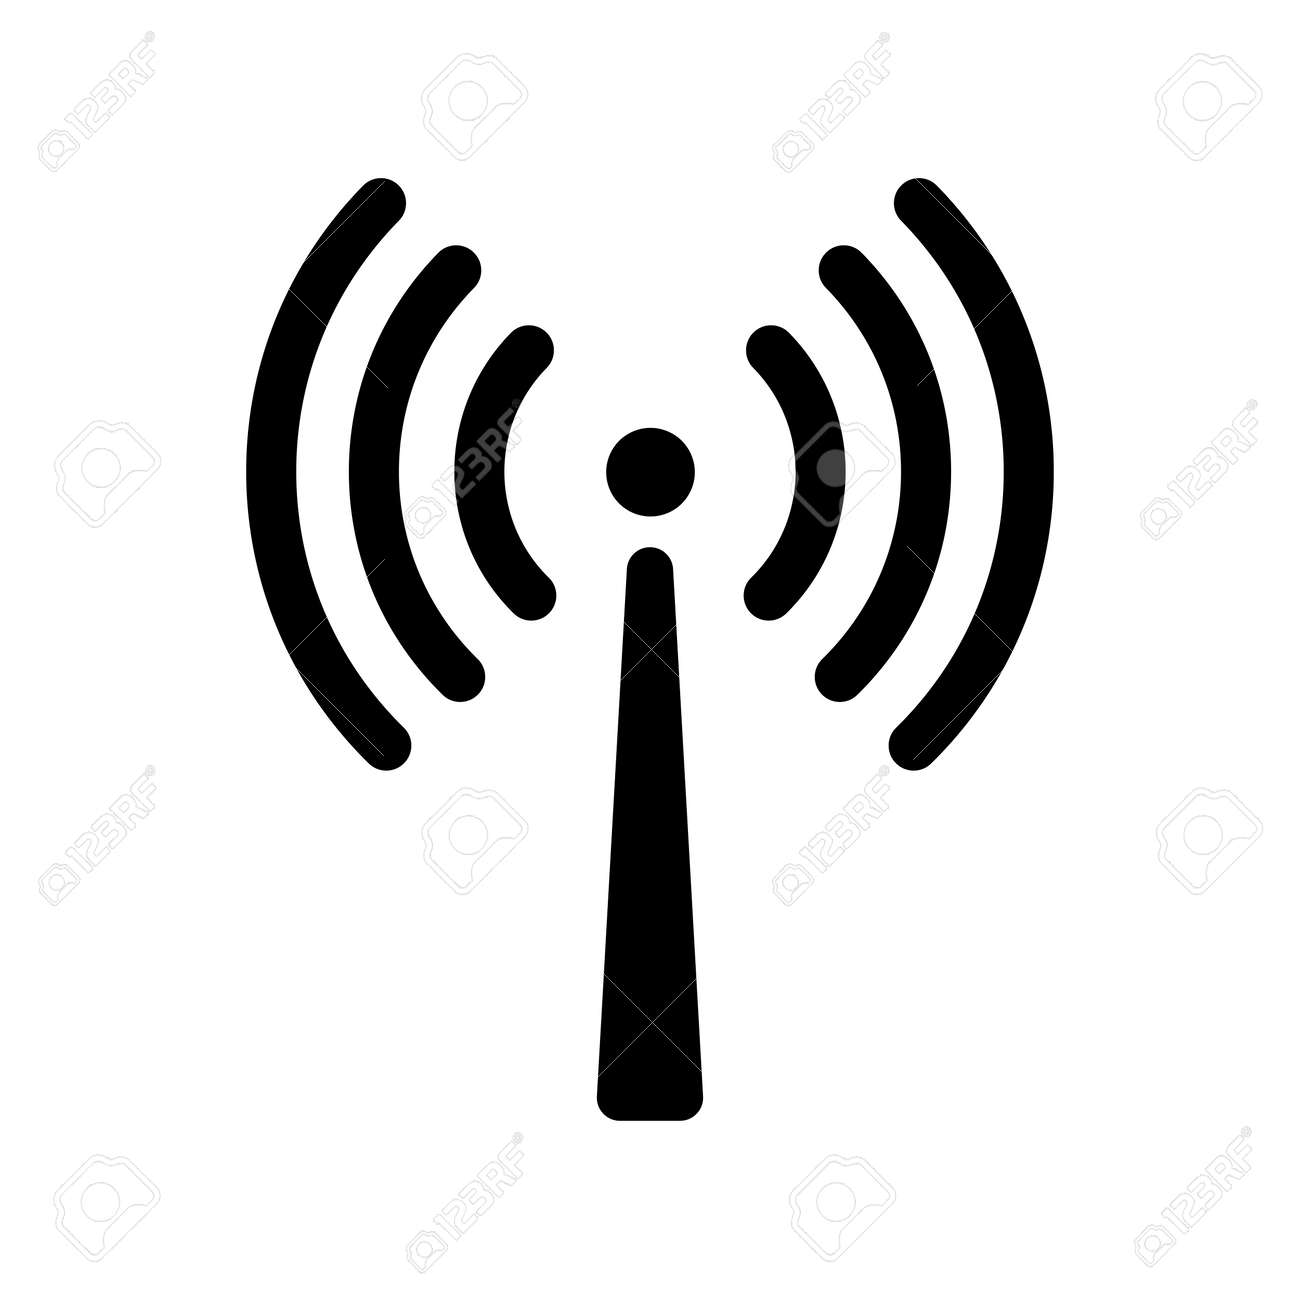 Signal transmission icon. Antenna or broadcasting tower and signal waves. Vector Illustration - 111212664